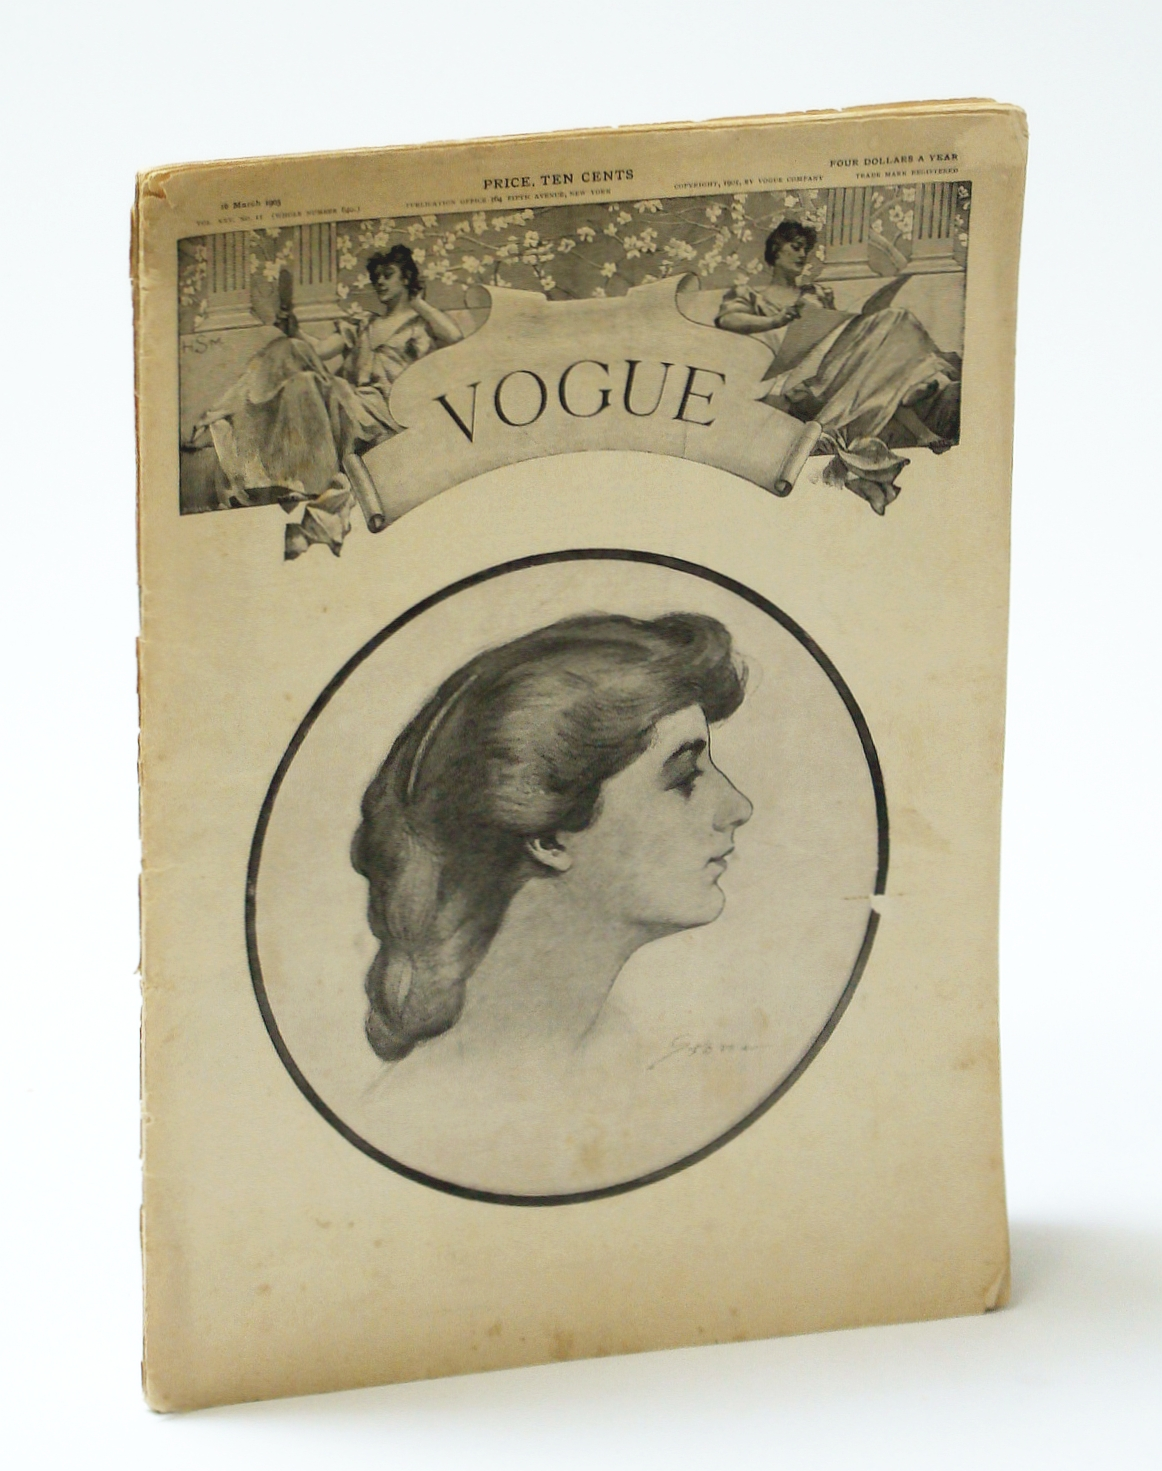 Image for Vogue (Magazine), 16 March (Mar.) 1905, Vol. XXV, No. II (Whole No. 640) : Great Peck & Peck Hosiery Ad